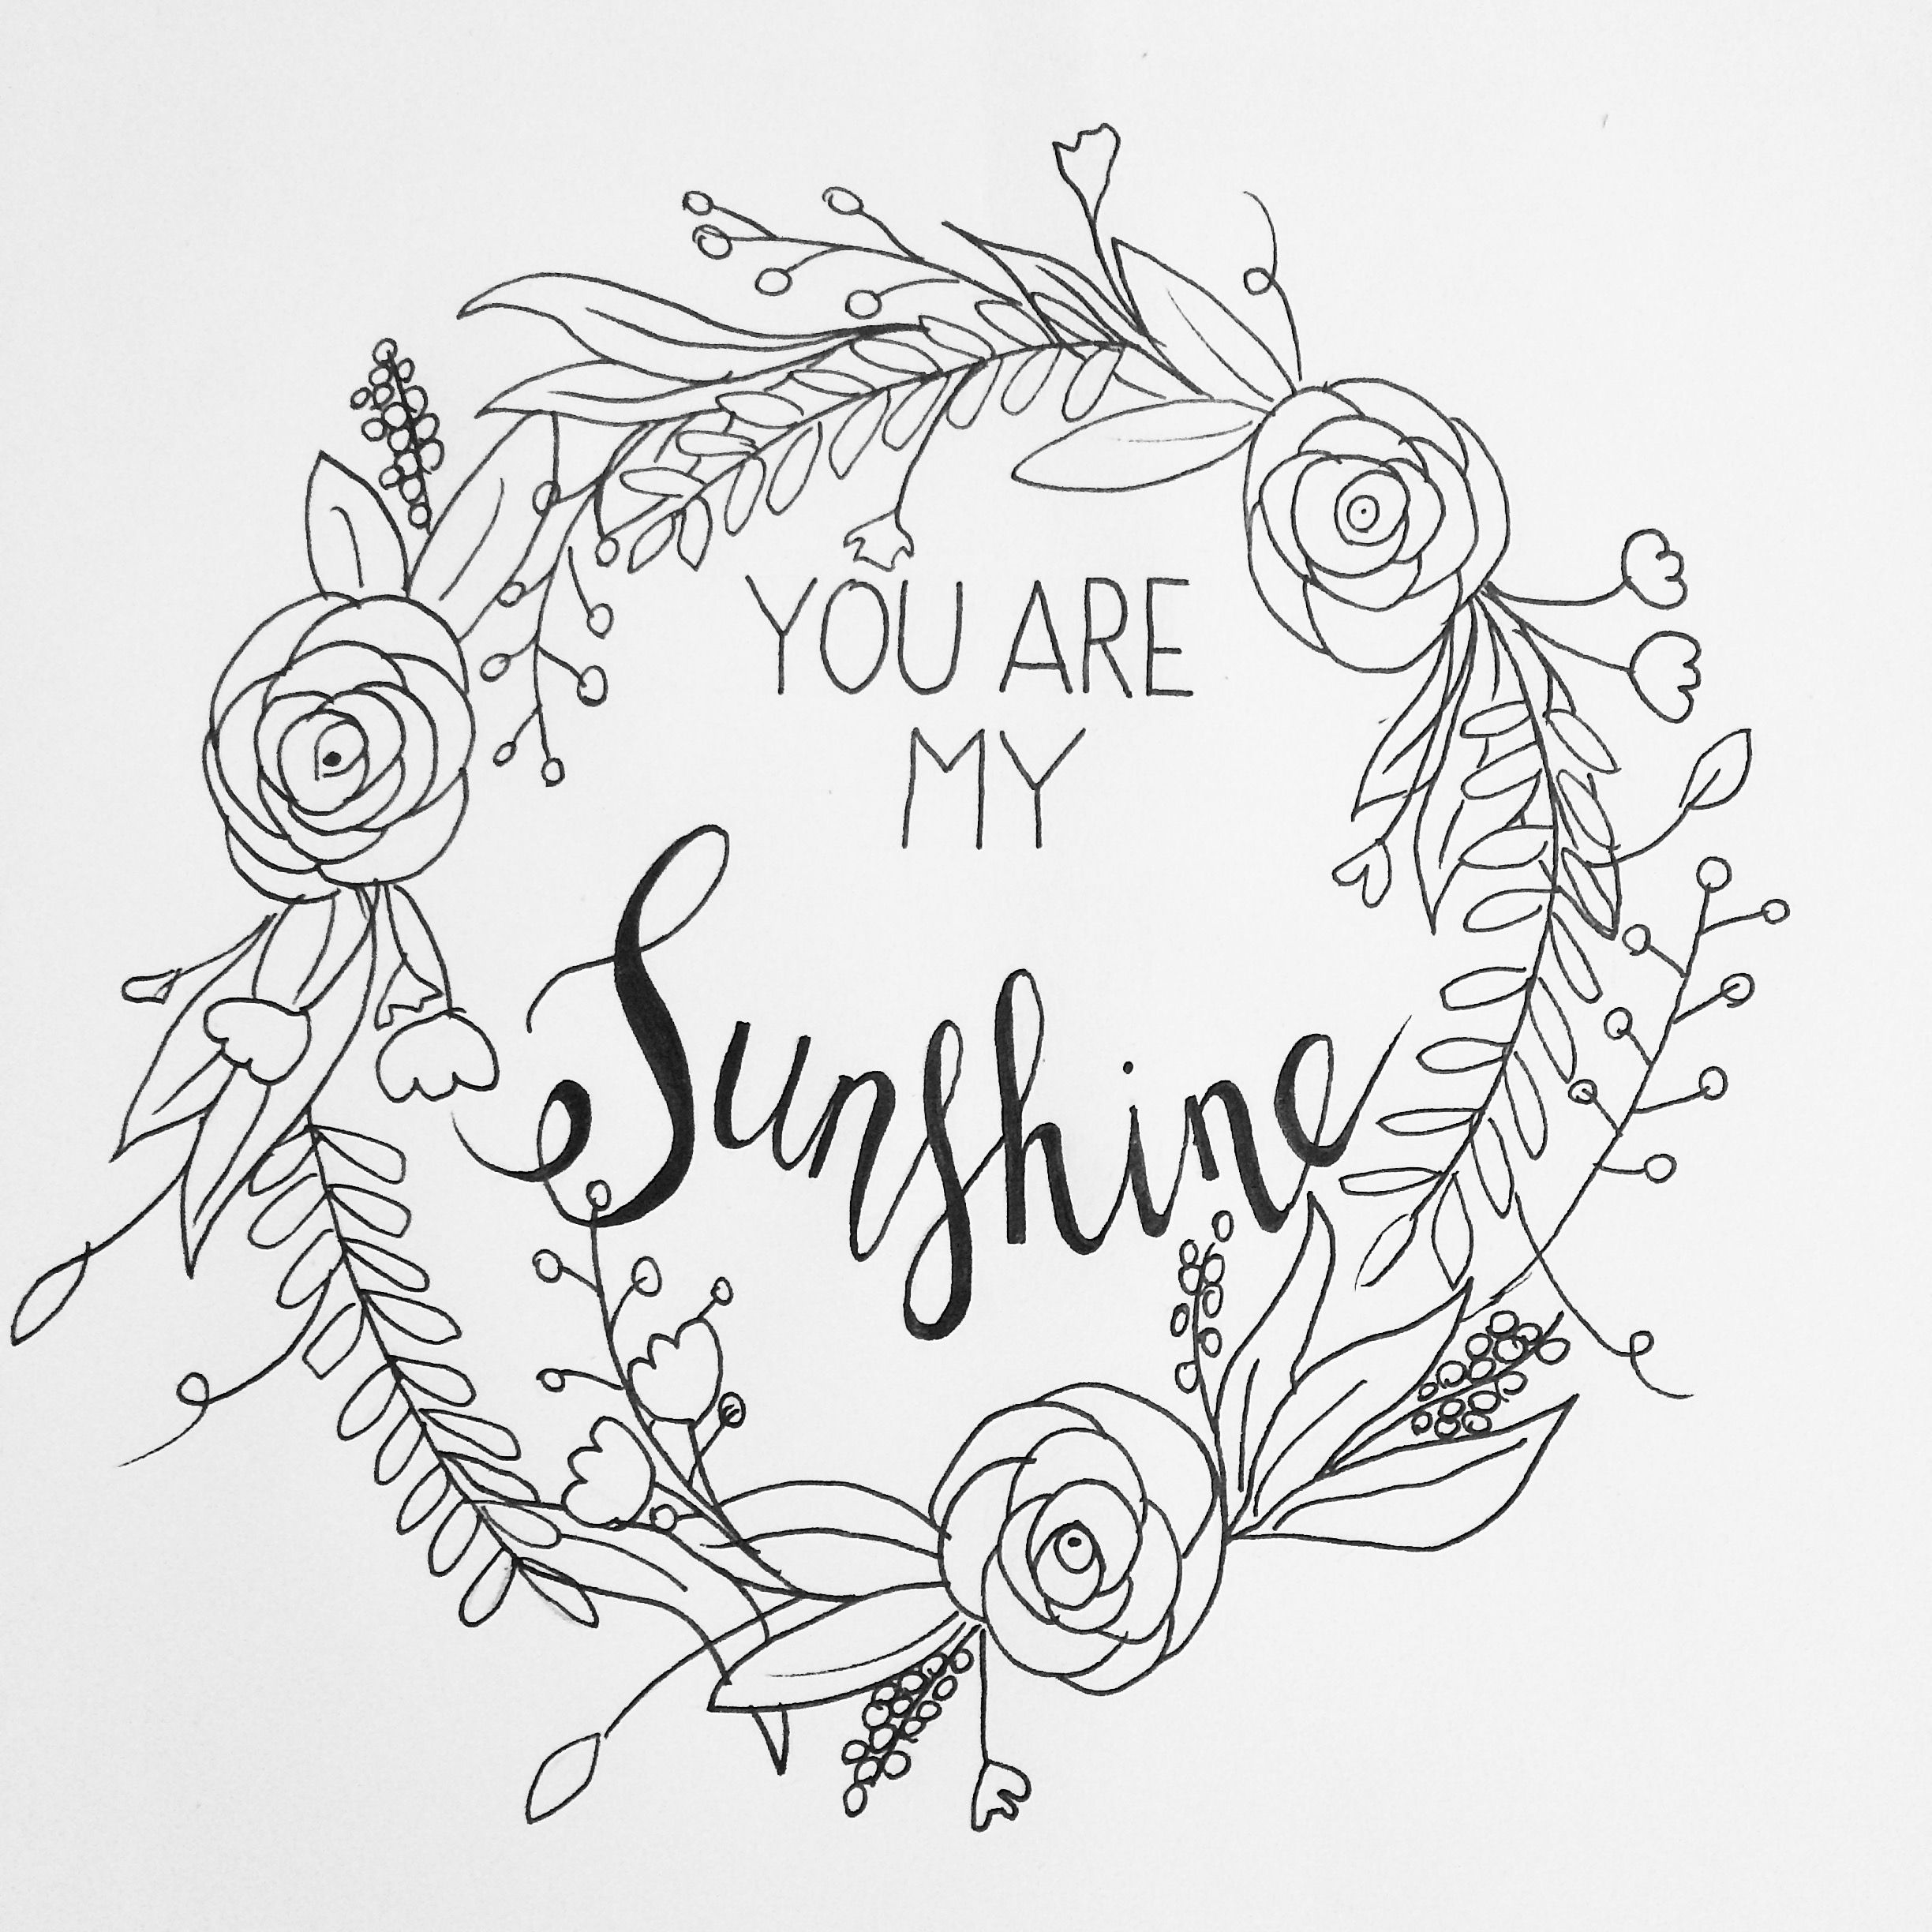 Handlettering doe je zo! You are my sunshine!  Christmas button